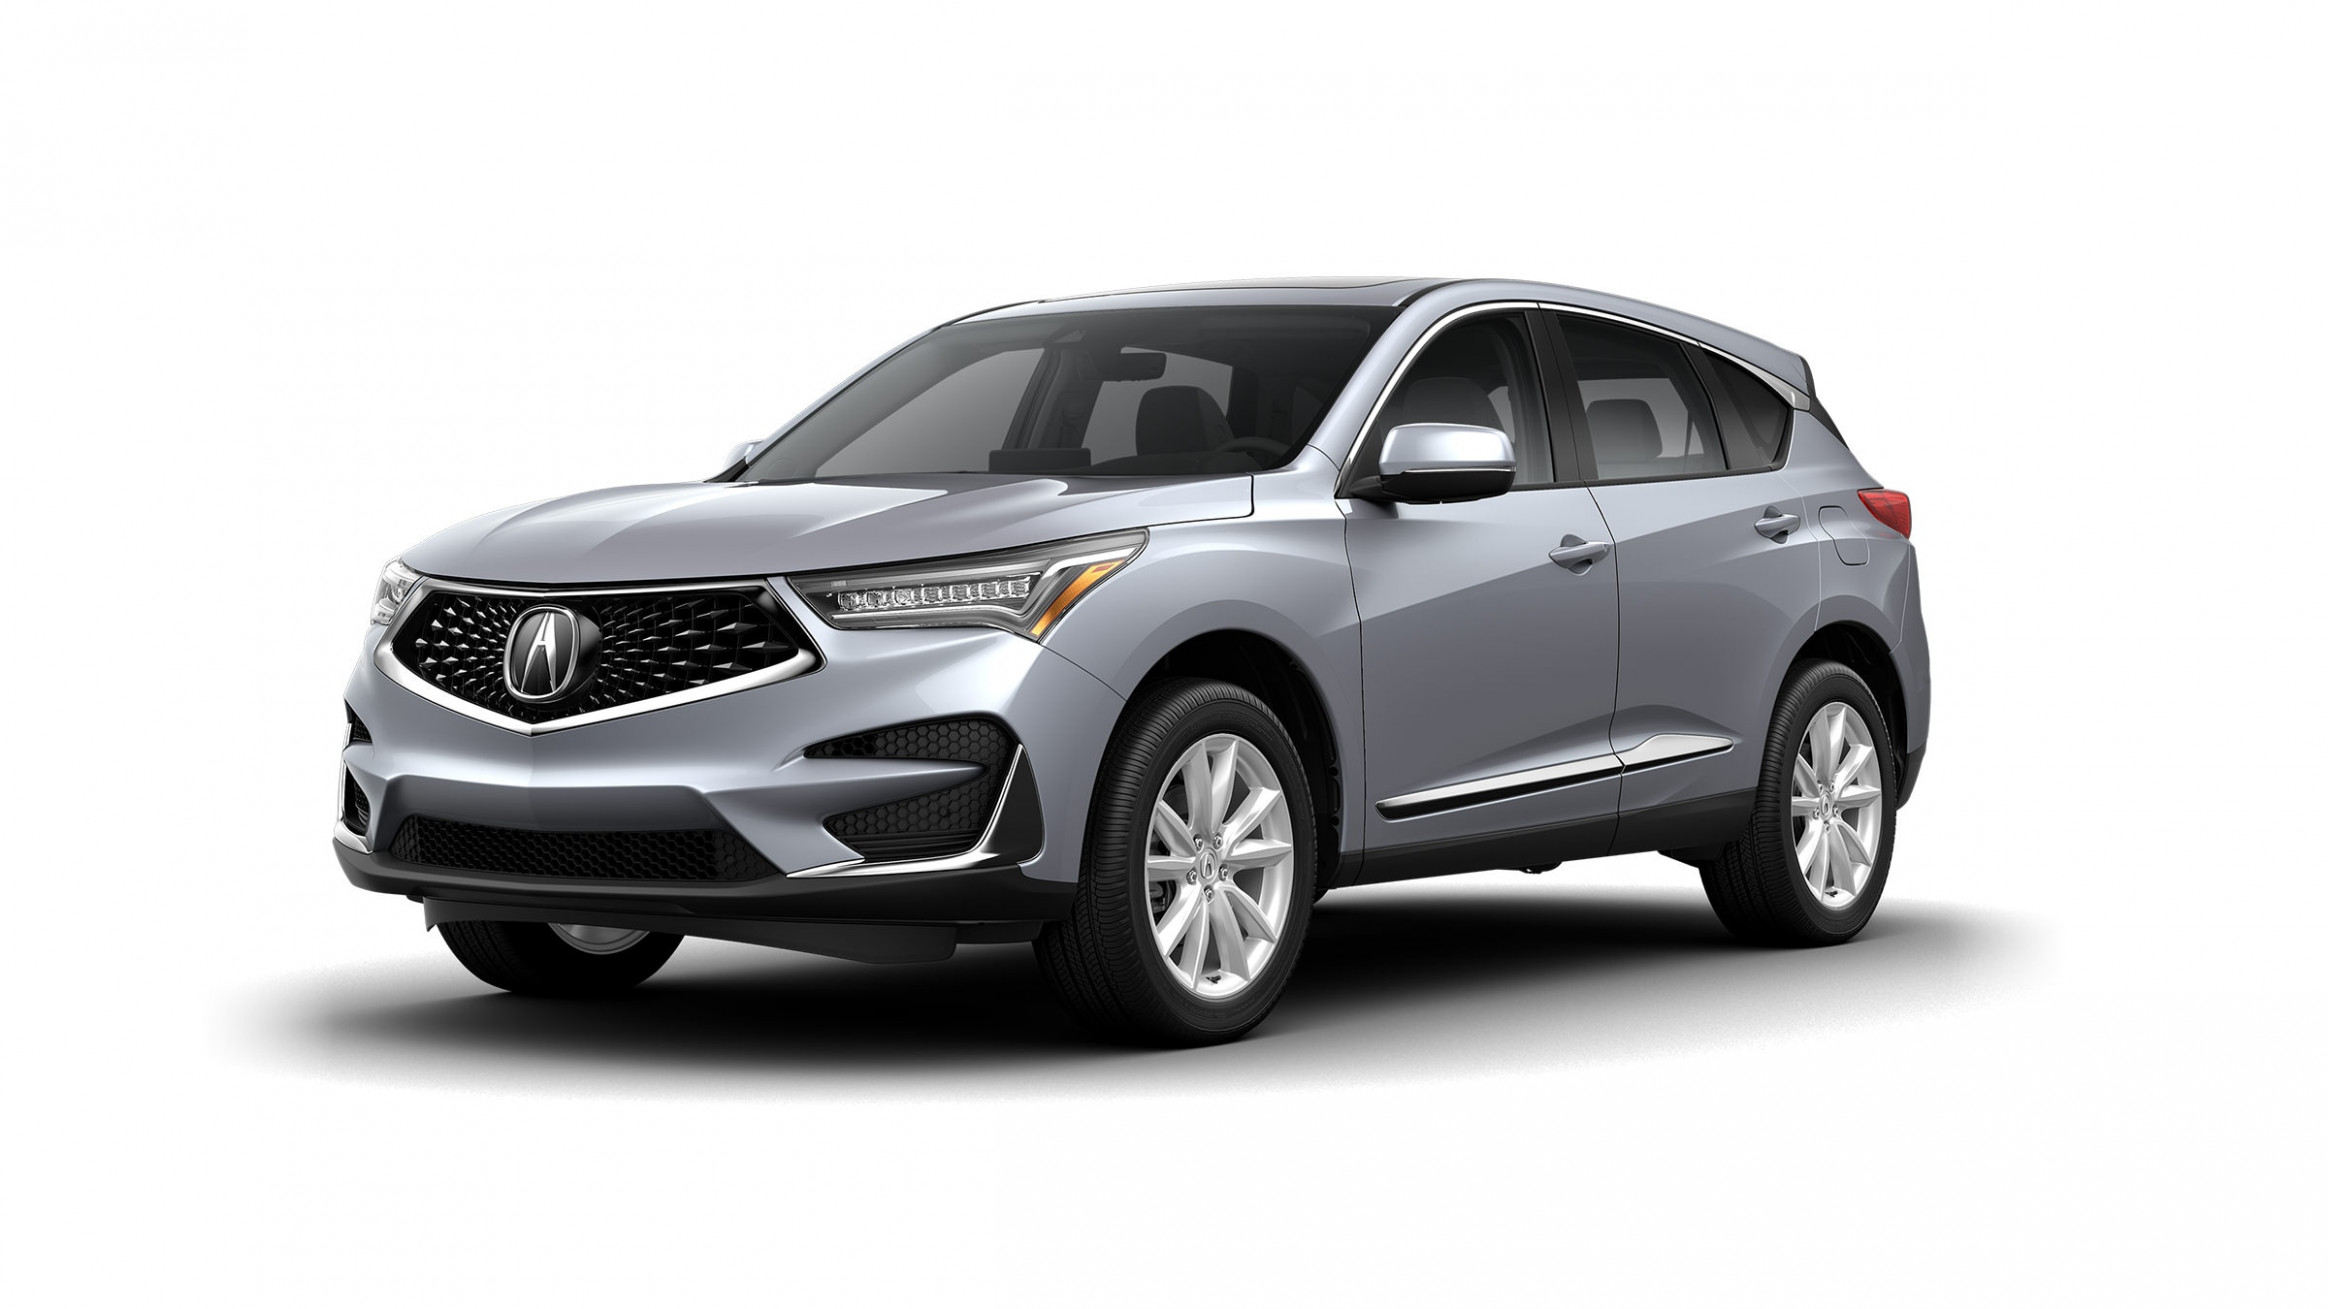 Acura Lease Offers & Deals | All Vehicles | Acura.com